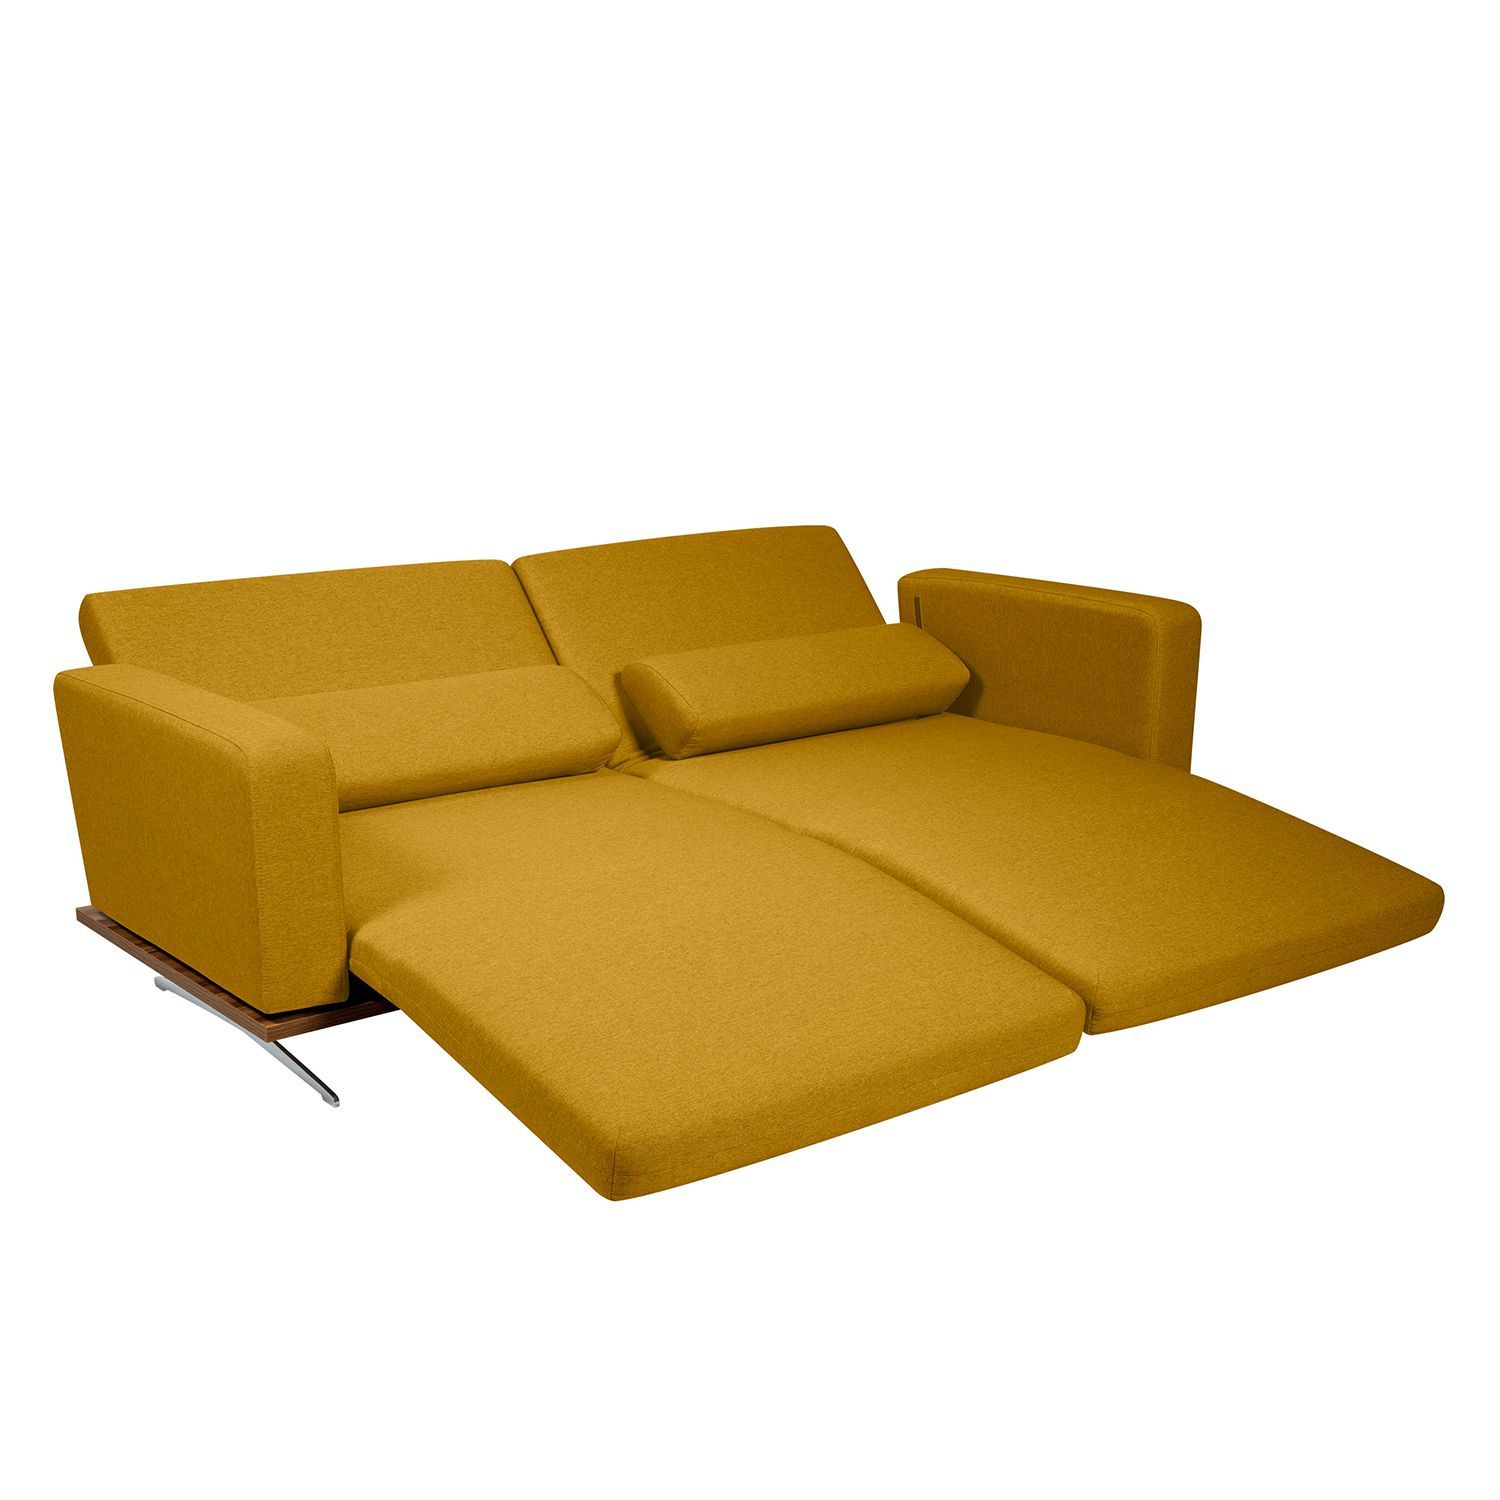 Home24 Schlafsofa Schlafsofa Copperfield Ii Webstoff Möbel Couch Furniture Und